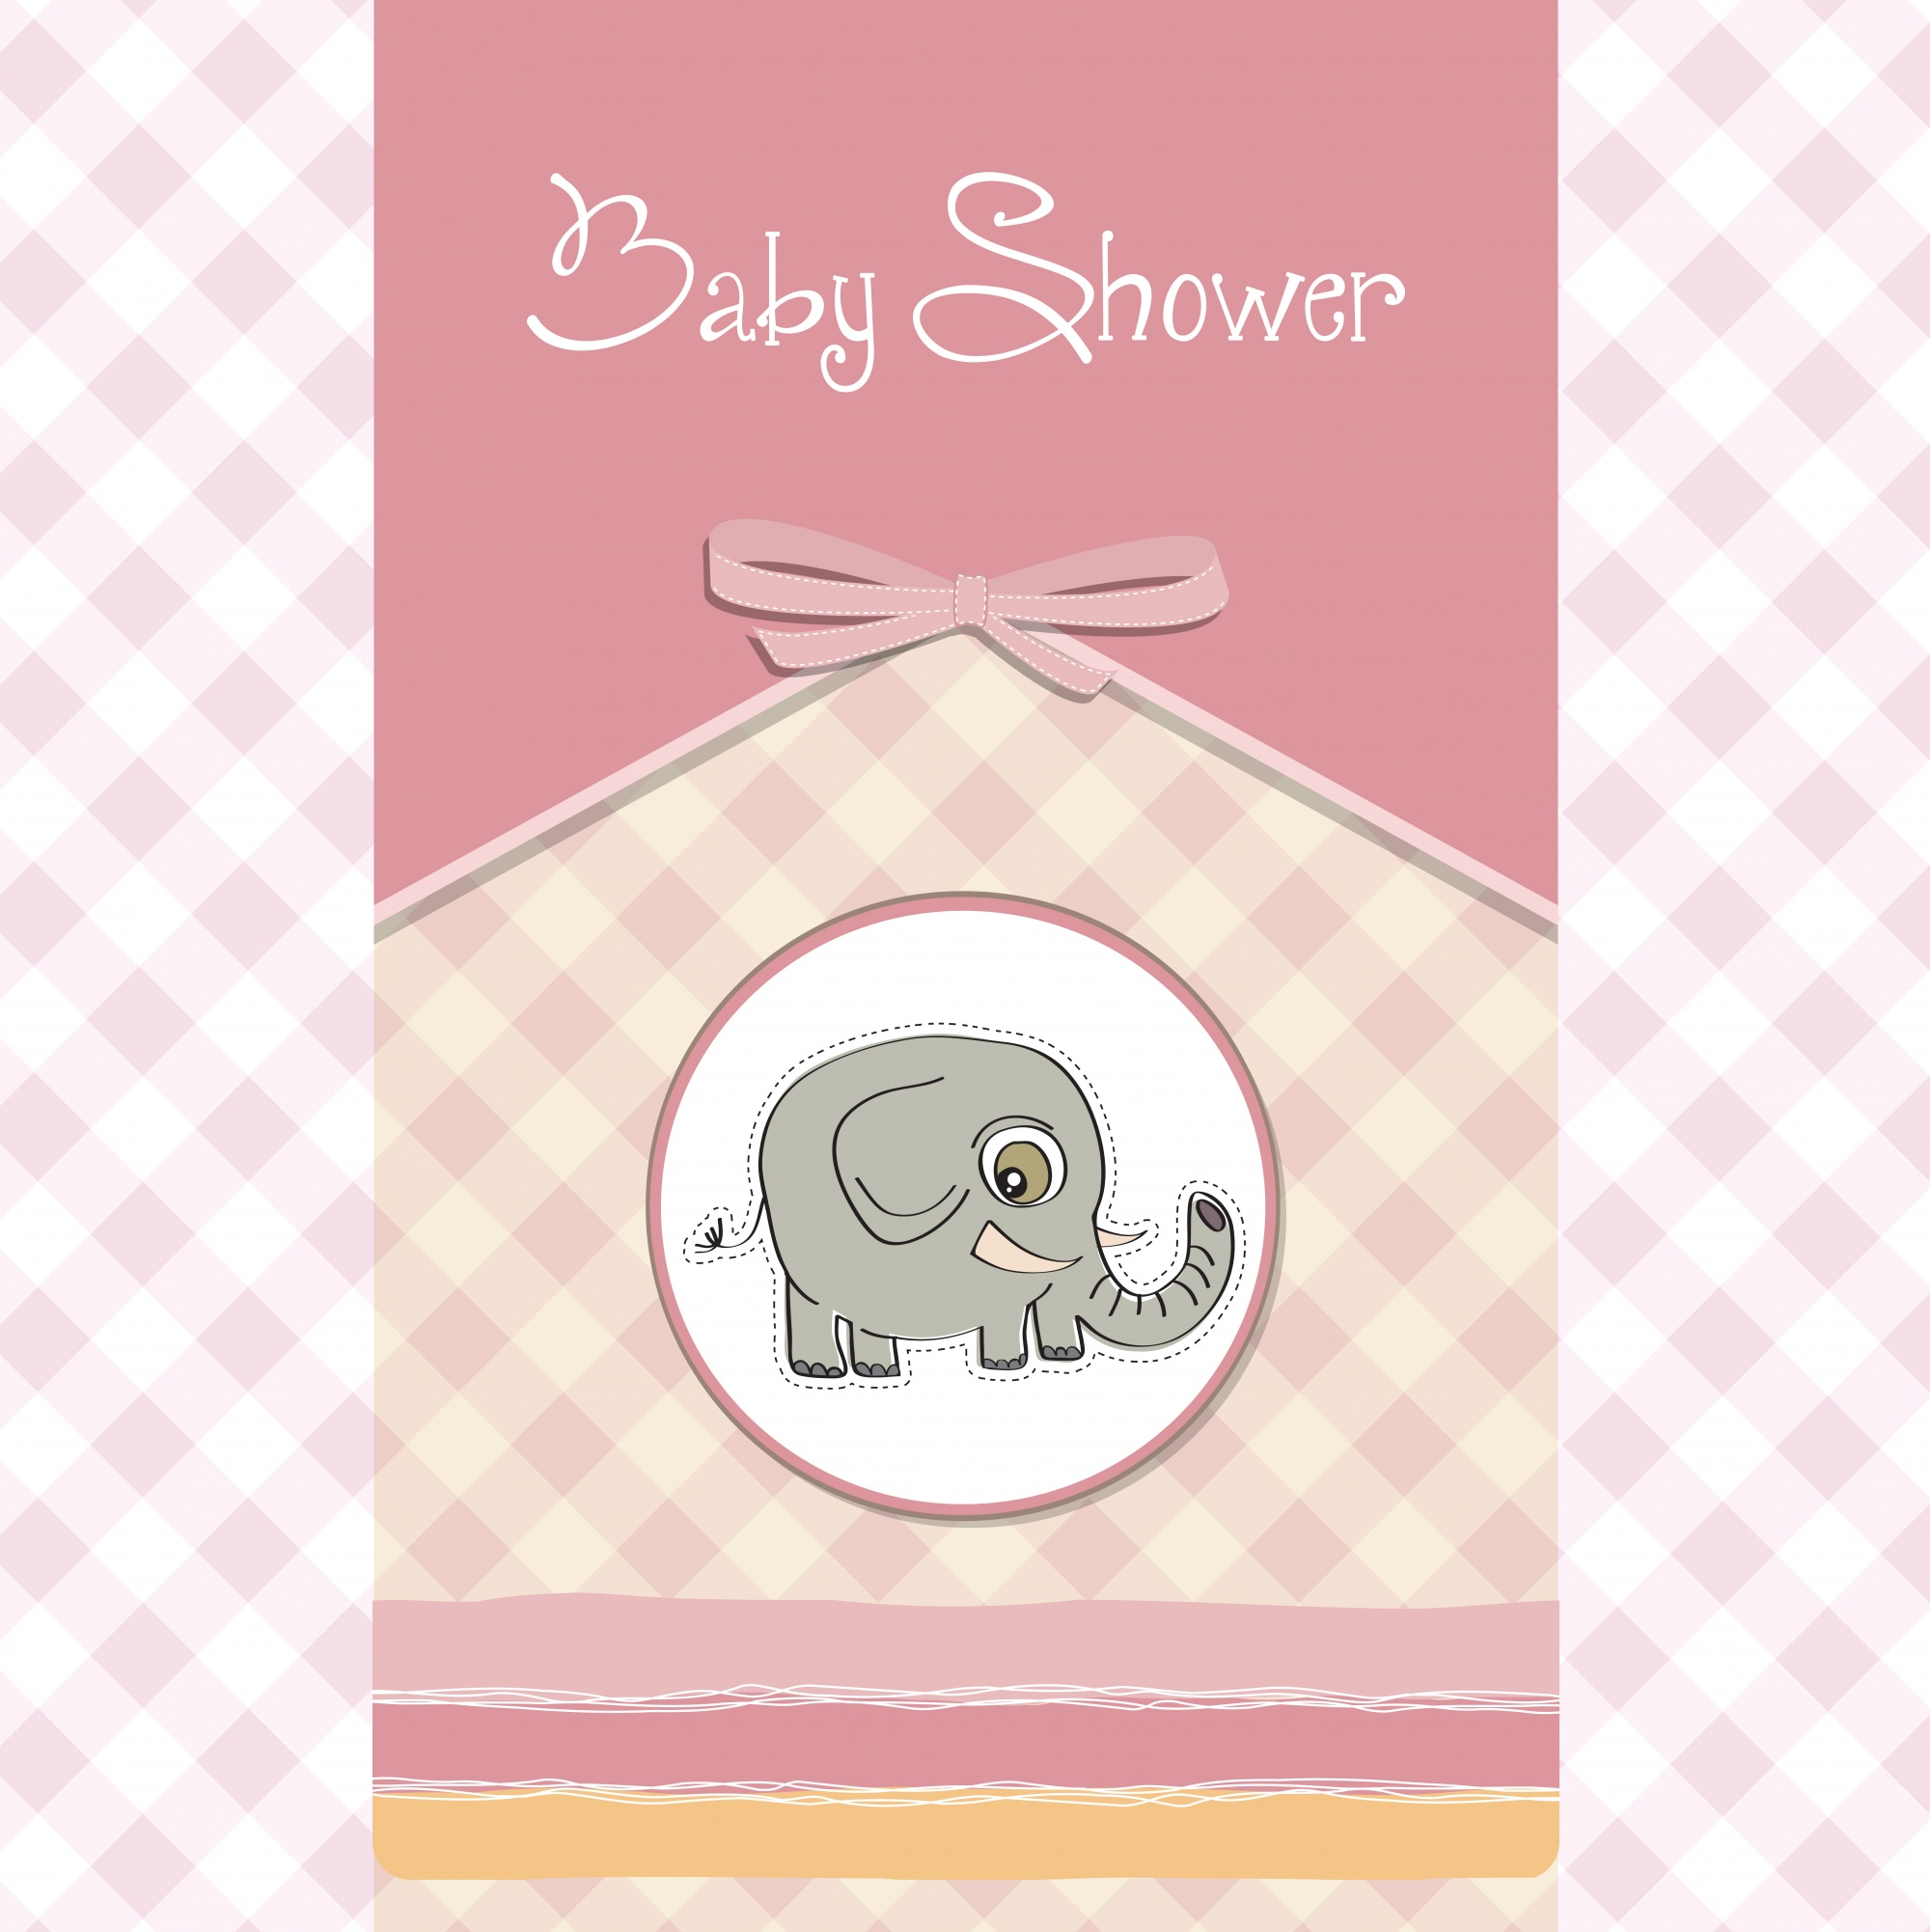 Romantic baby shower card